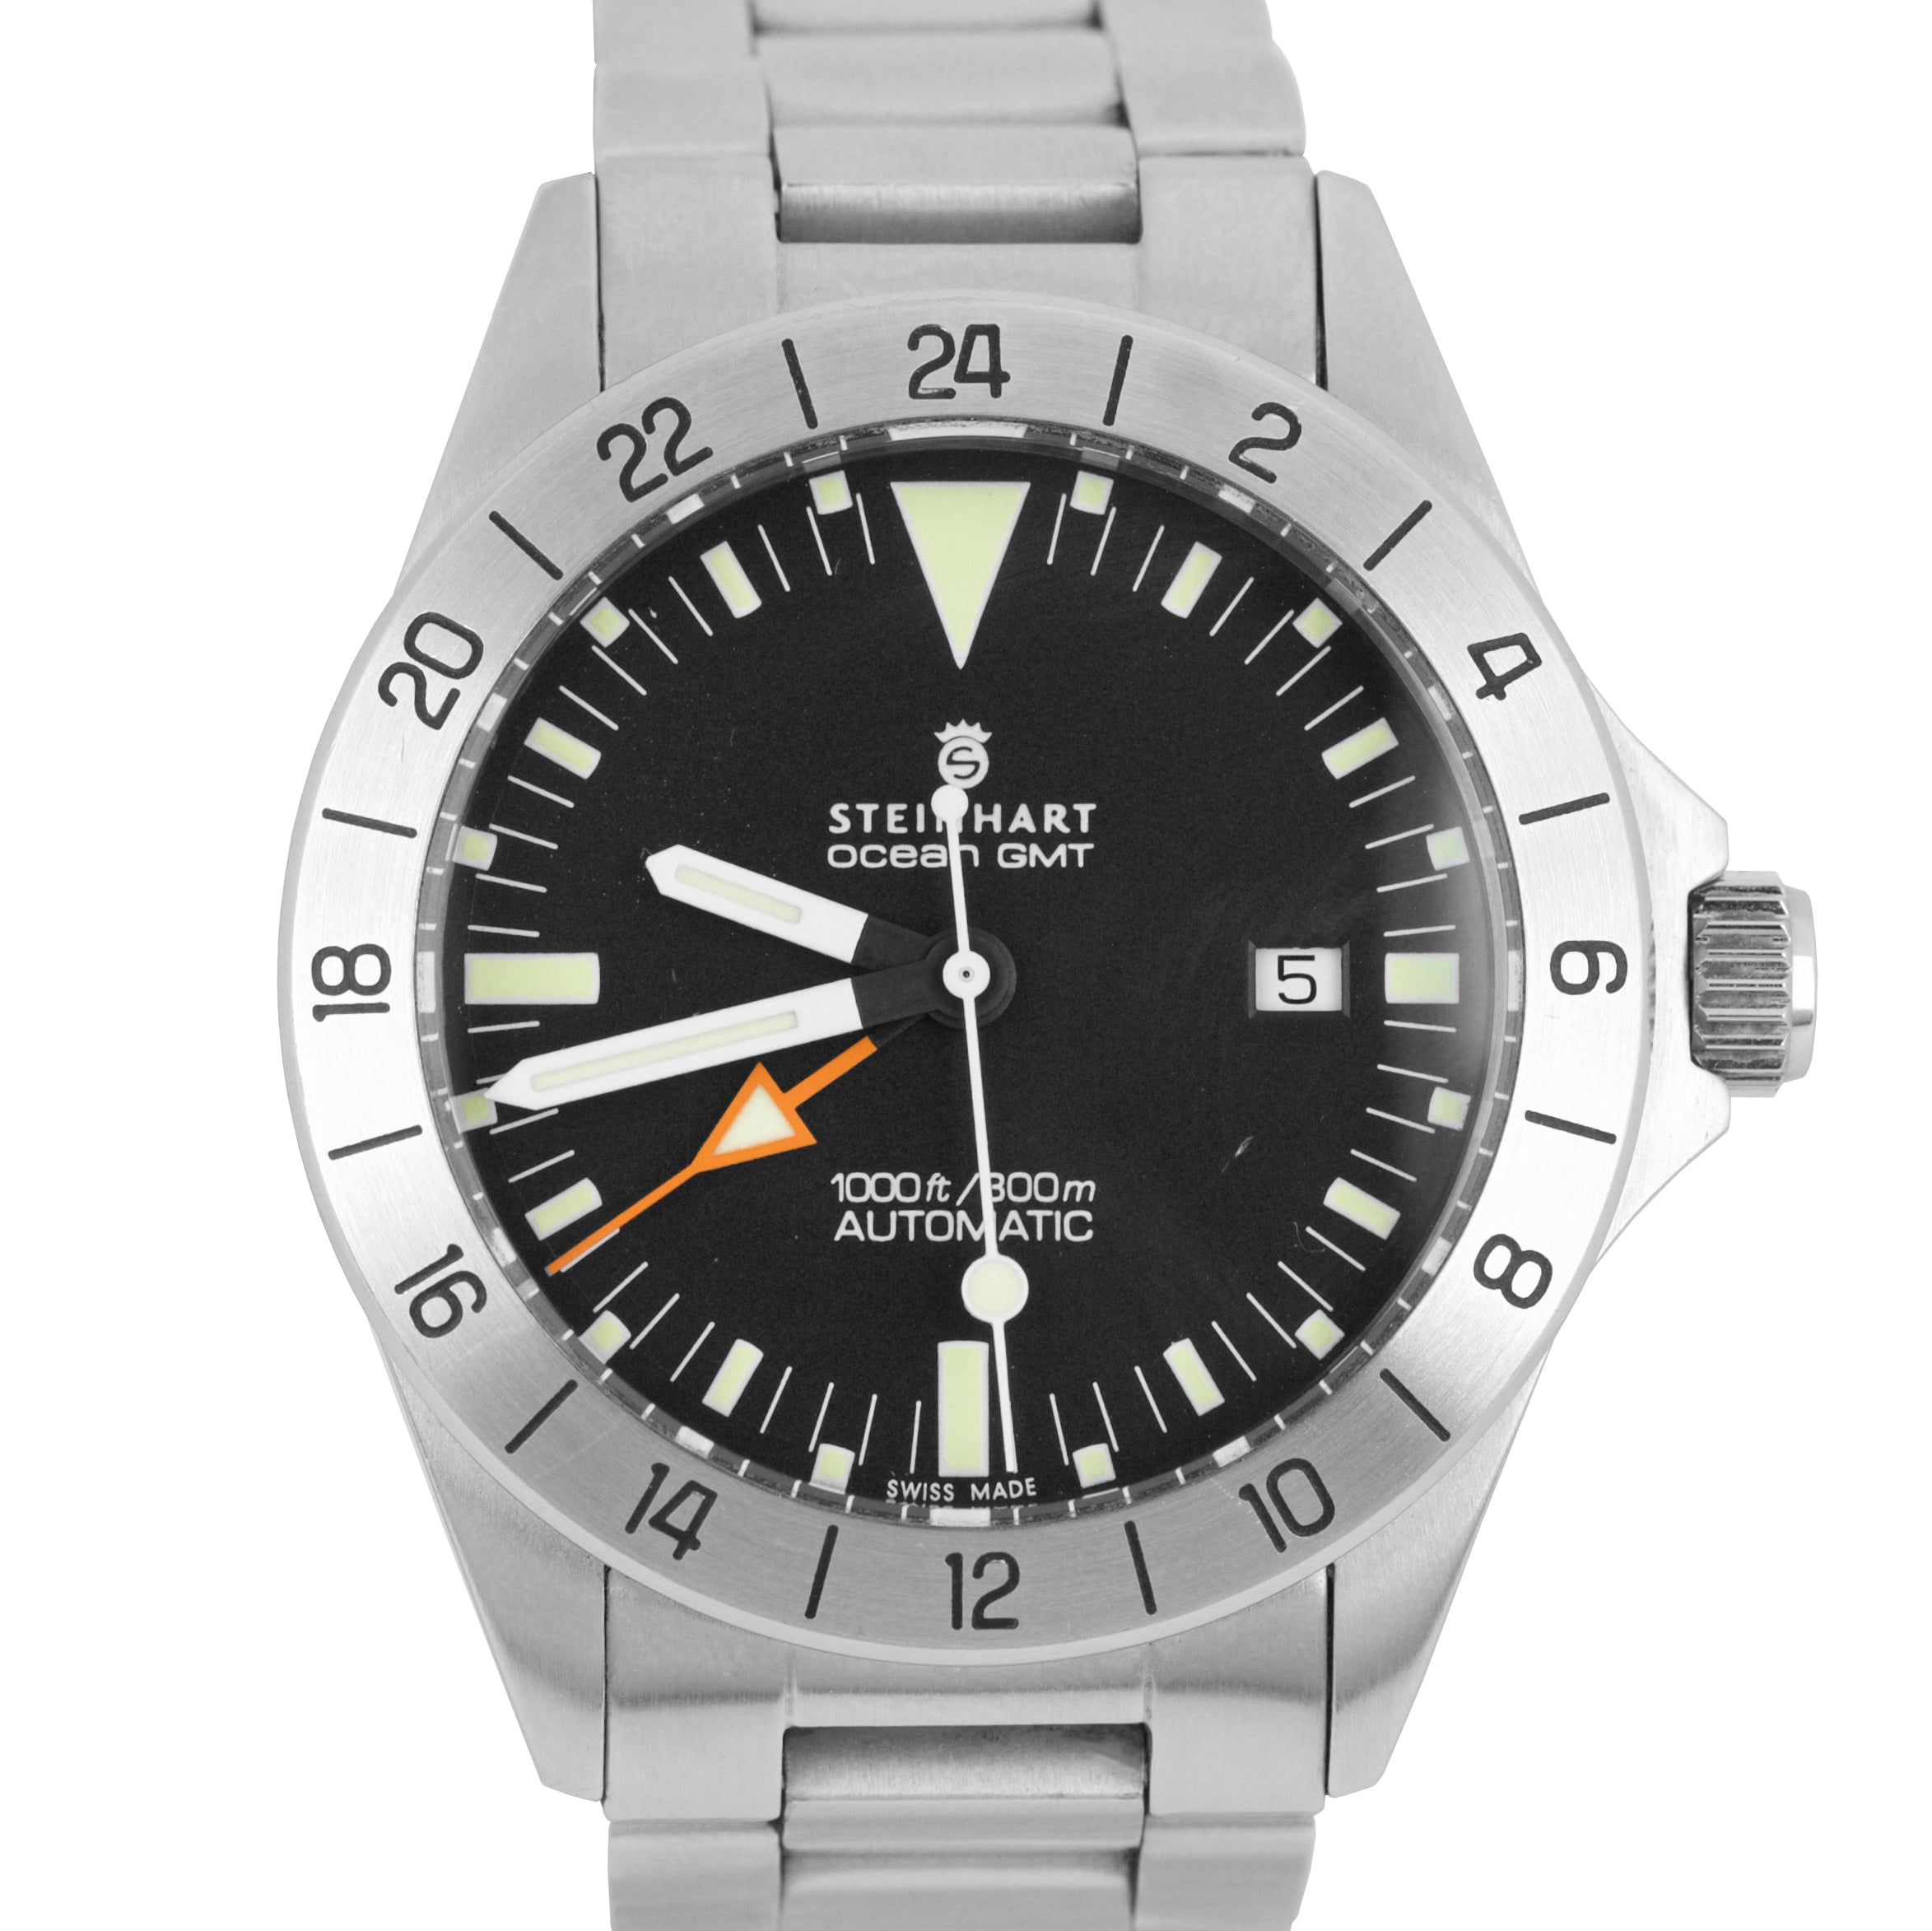 Steinhart Ocean Vintage GMT Explorer Stainless Steel Automatic 42mm Watch 2893-2